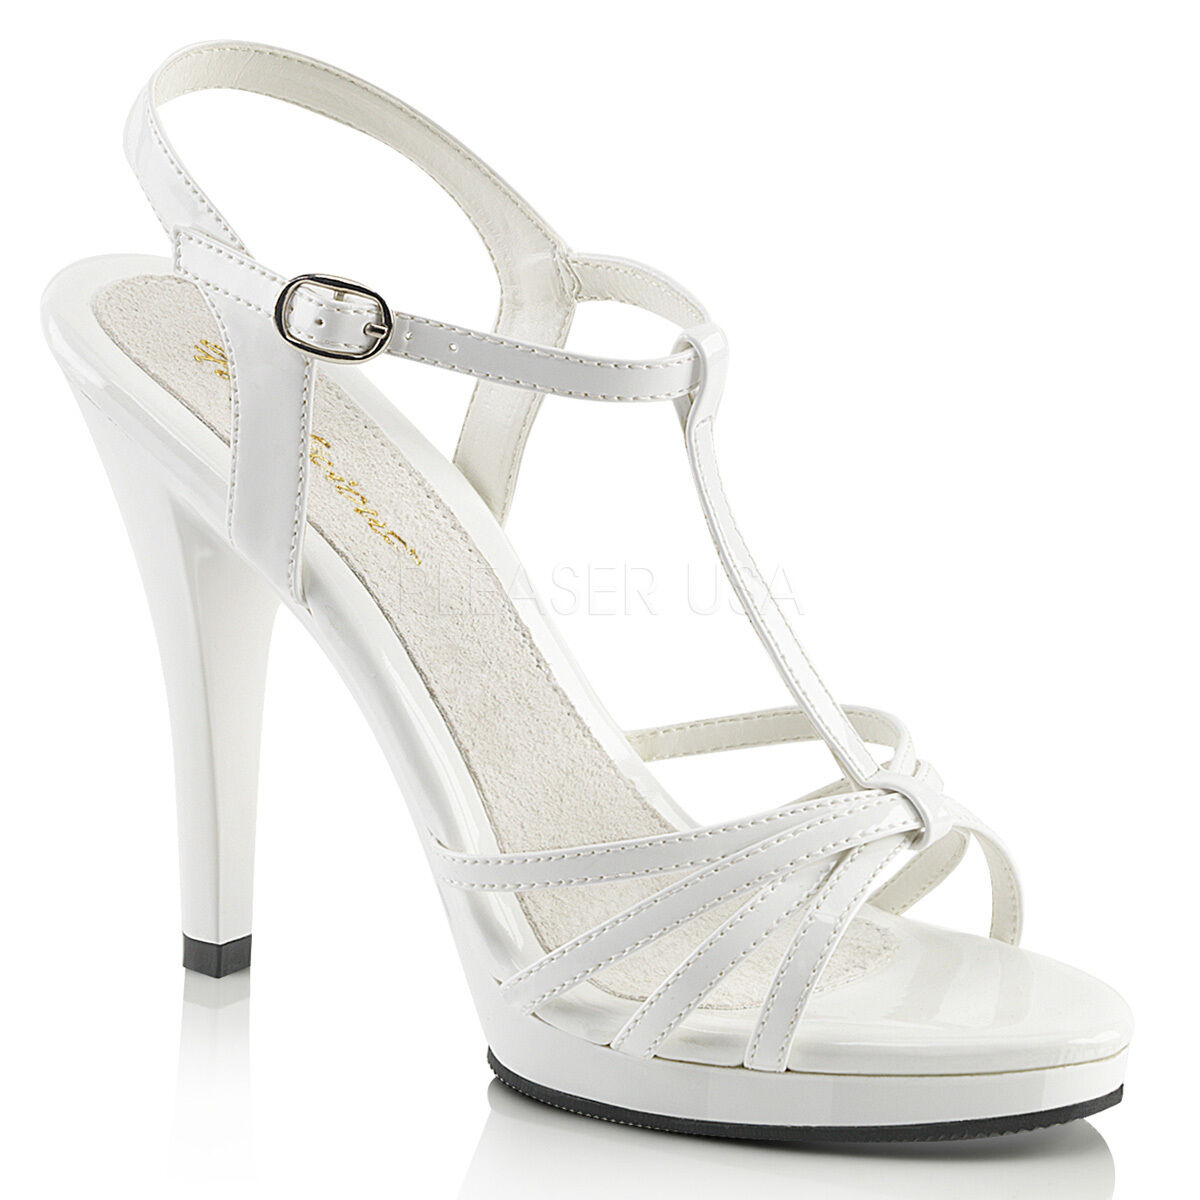 PLEASER FABULICIOUS FLAIR-420 WHITE T-STRAP PLATFORM STILETTO HEEL SANDALS